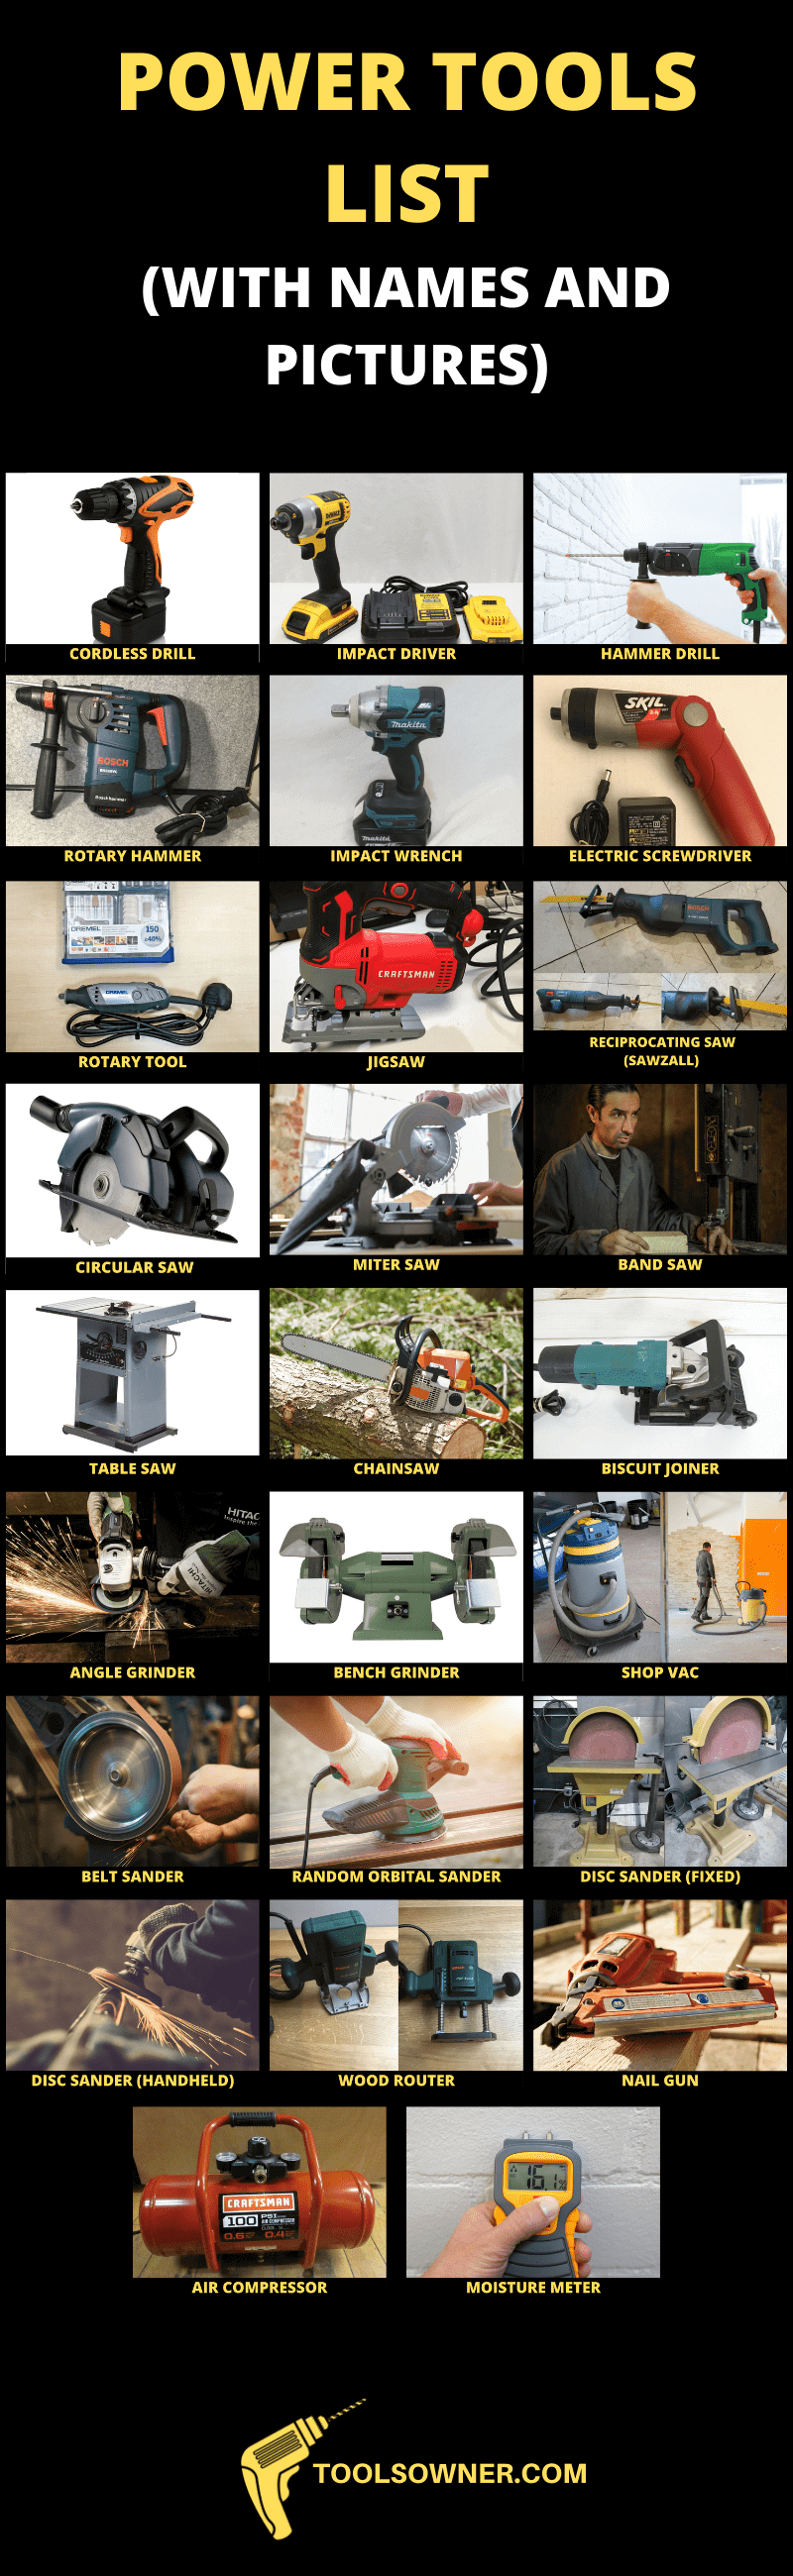 Power tools list with names and pictures